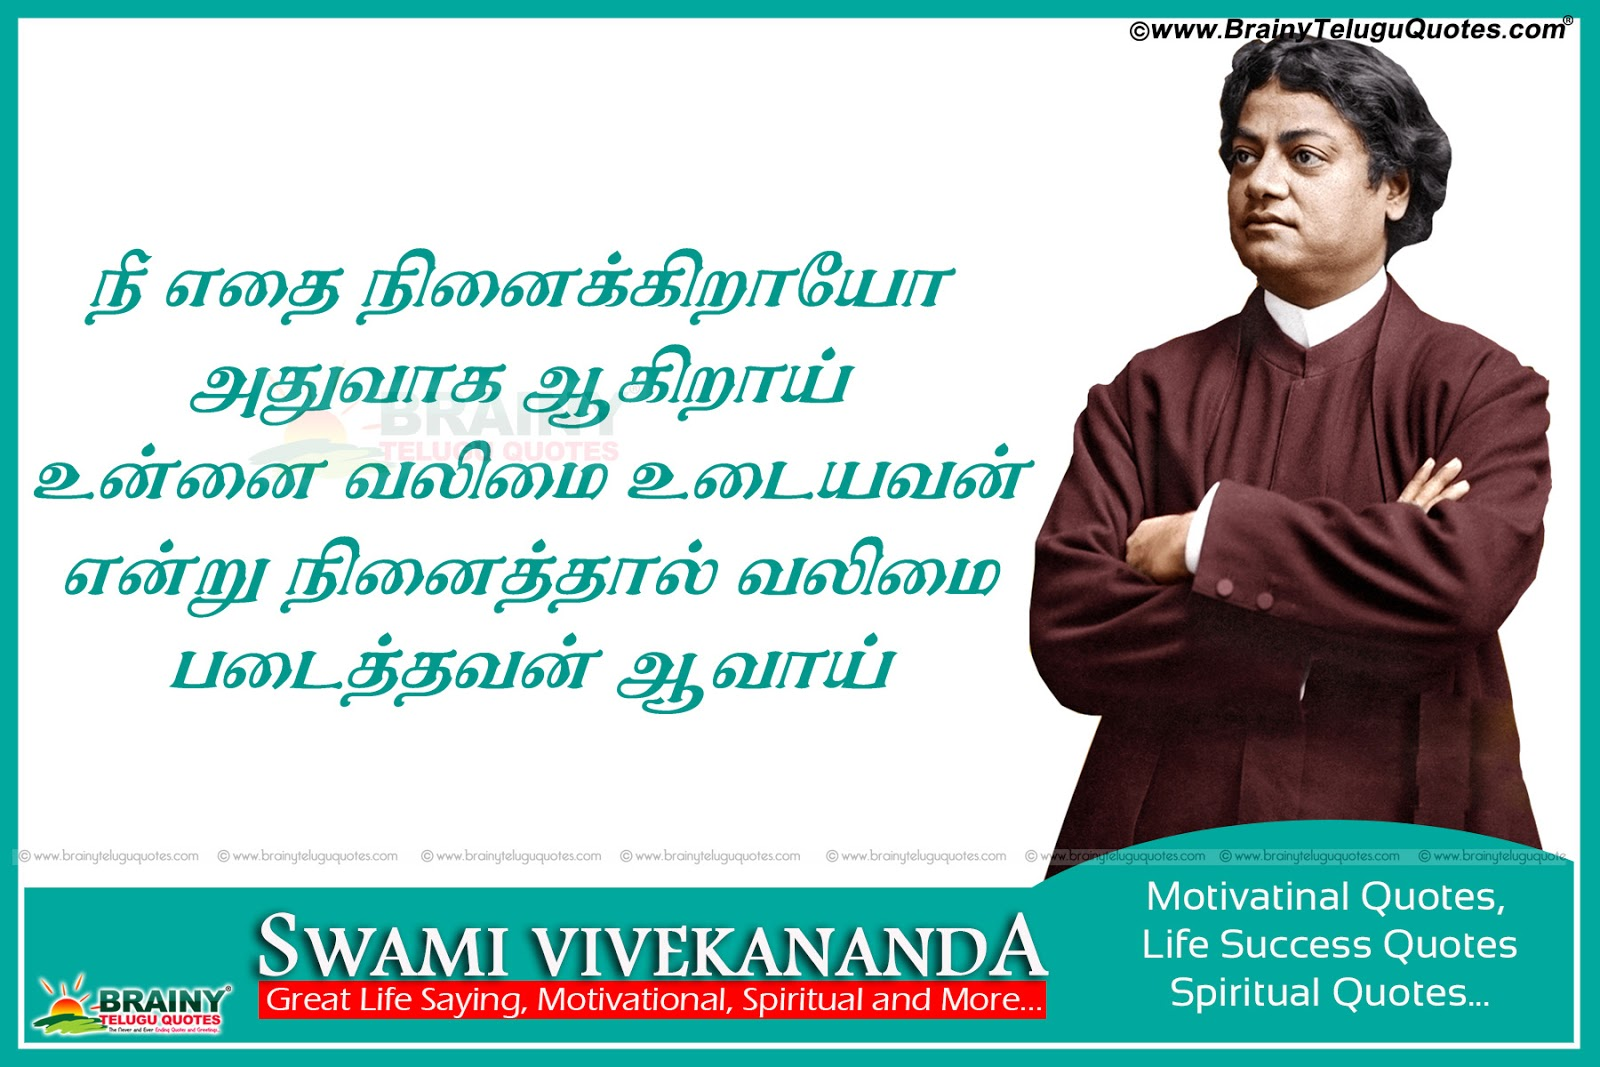 swami vivekanandar tamil inspiring quotations and good